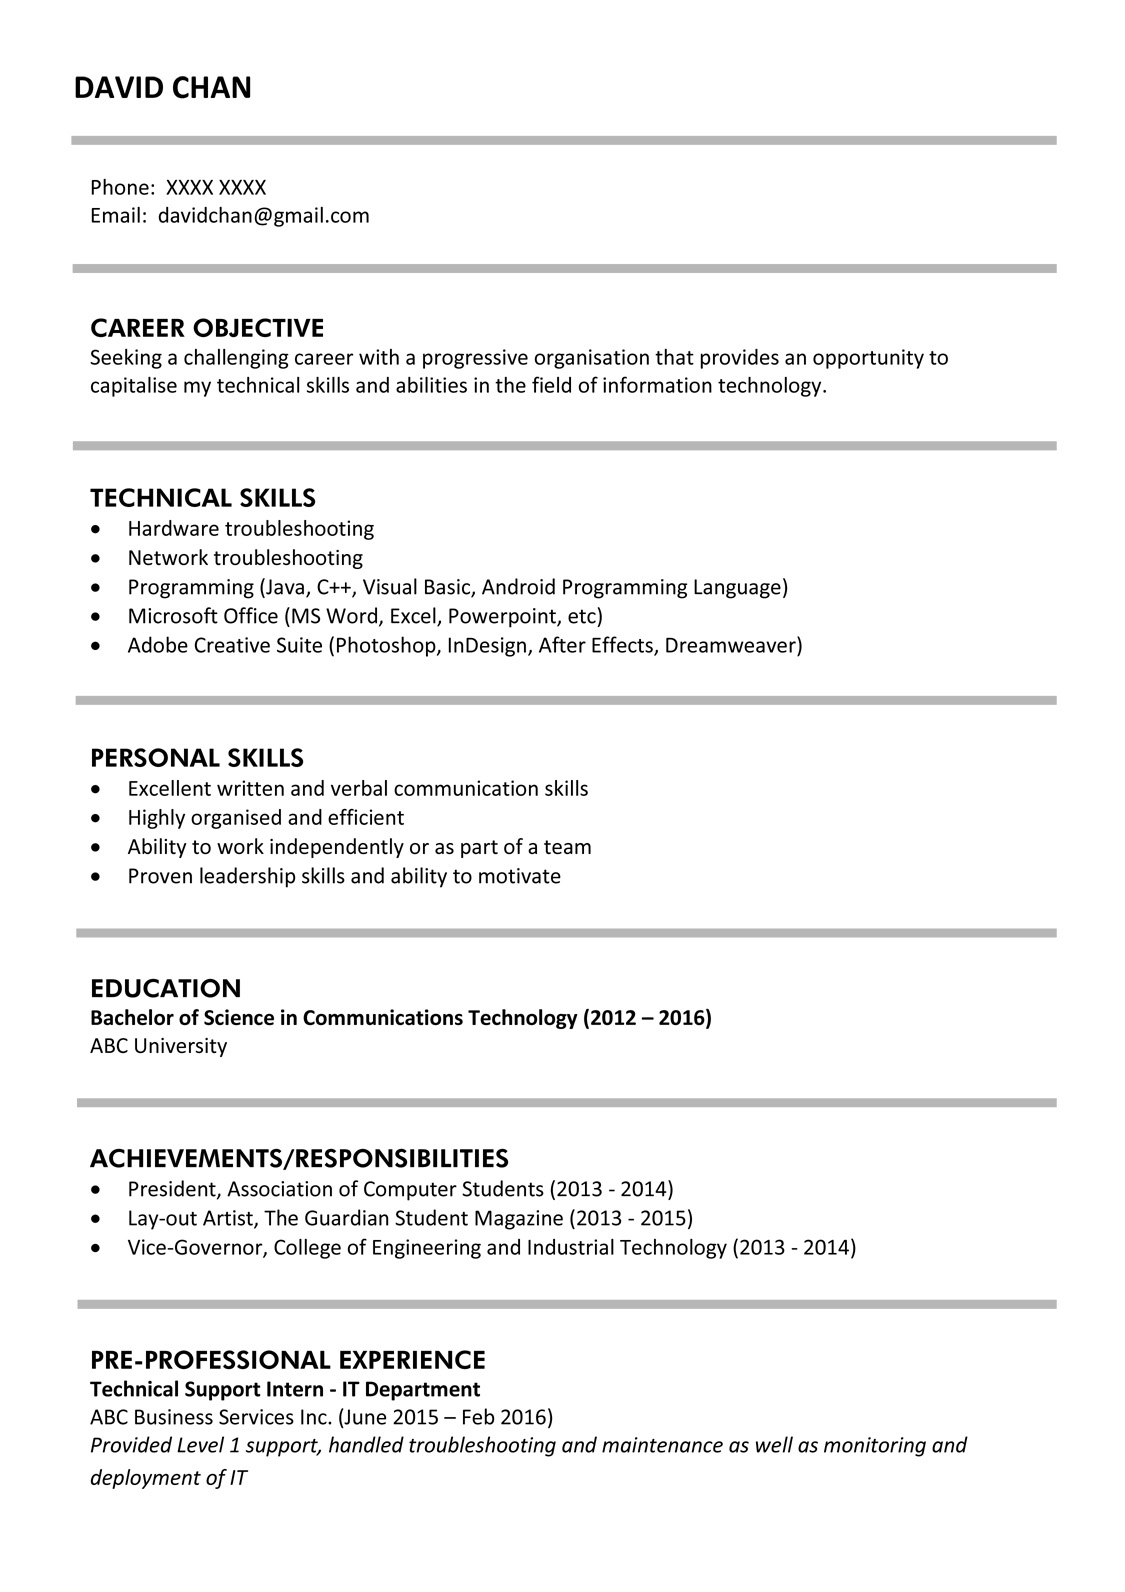 sample resume format 1